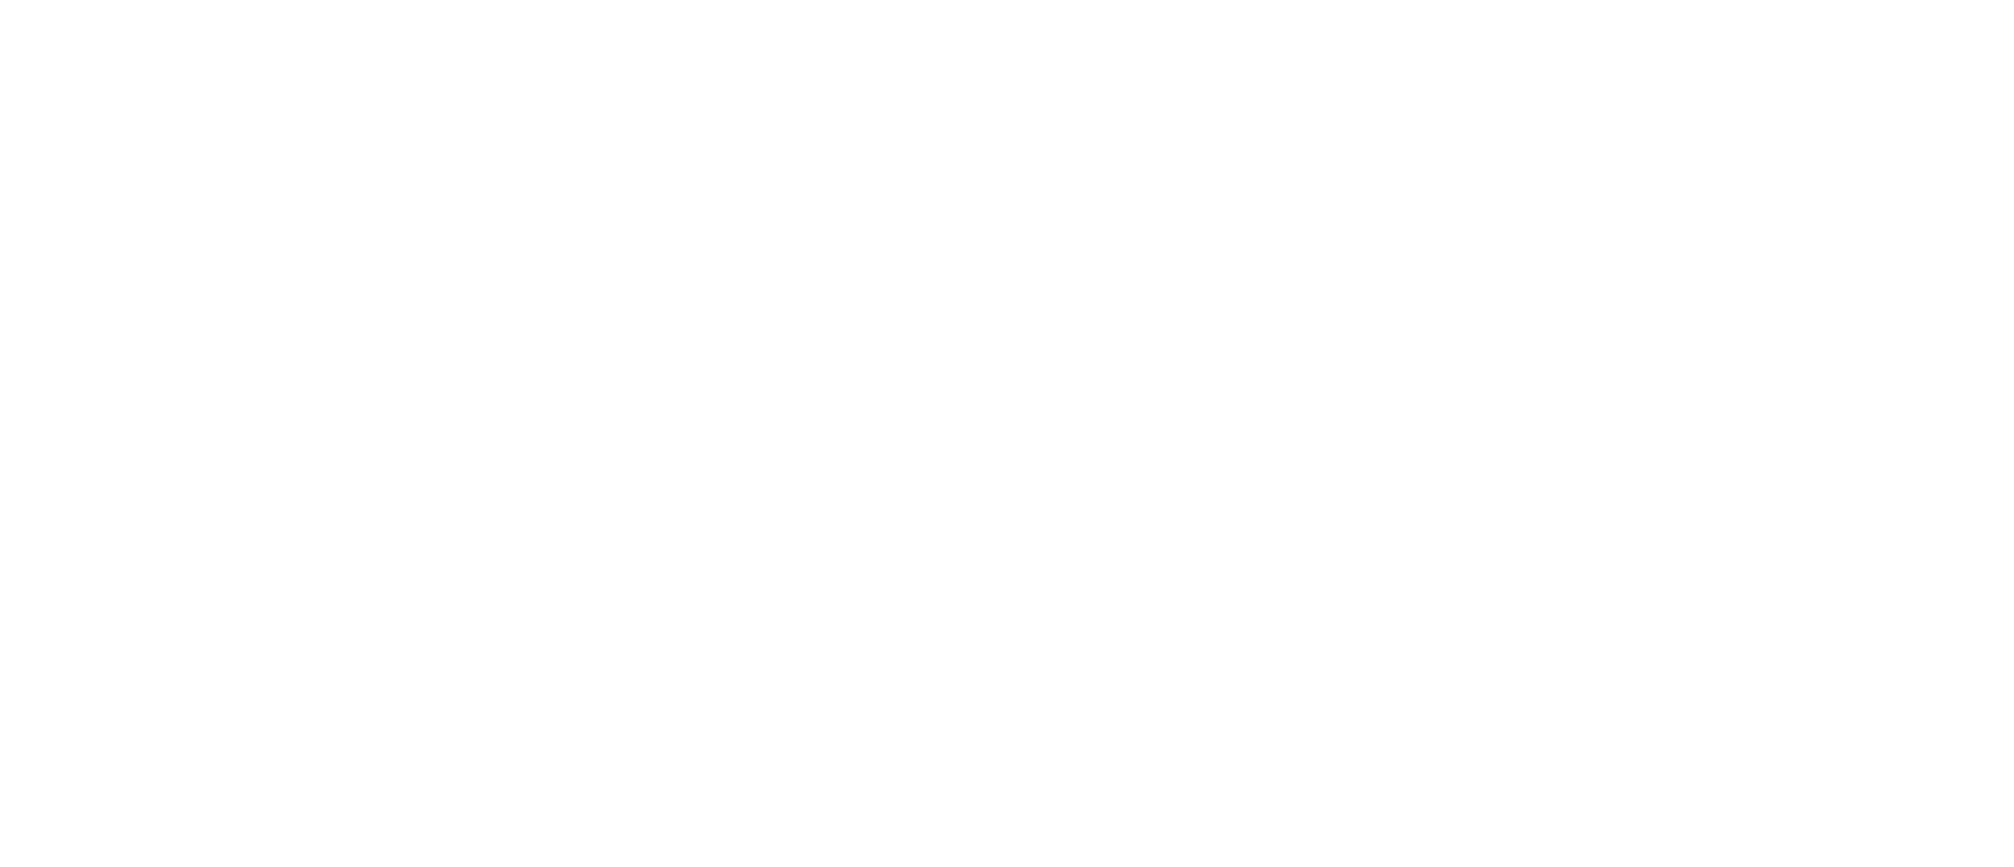 Neuropsychological Consultants, Inc.